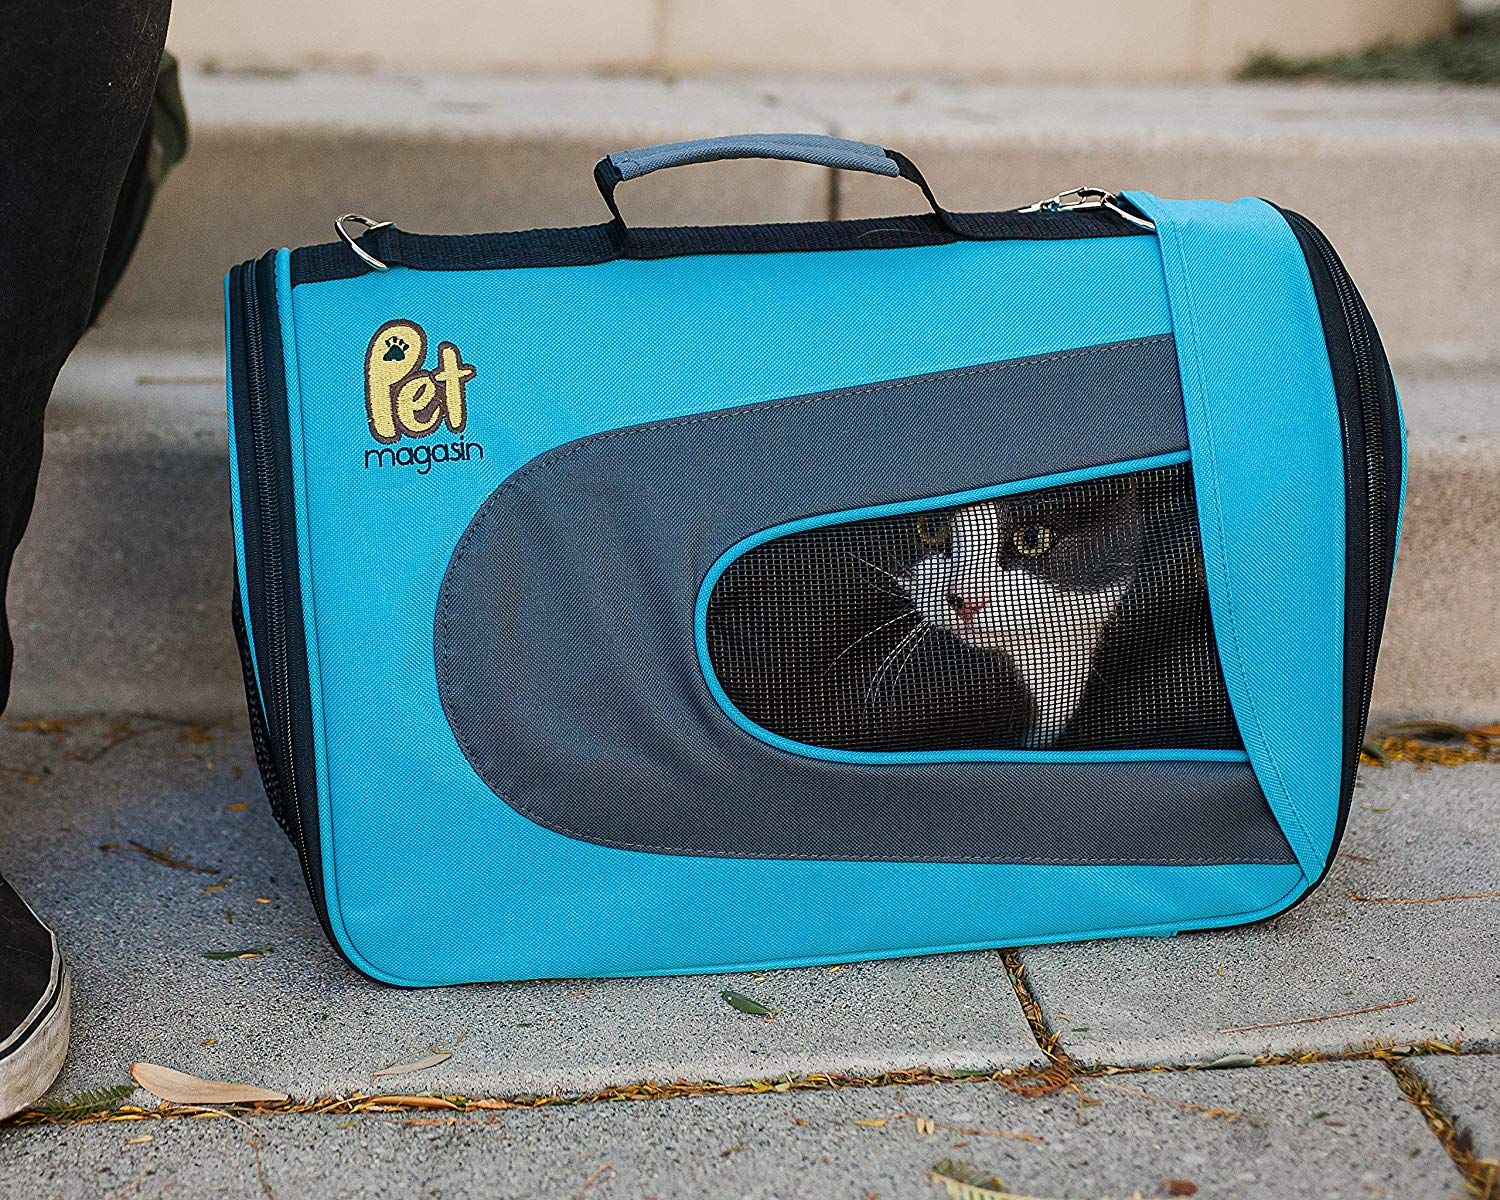 0fdcbd51ff Pet Magasin Luxury Soft-Sided Cat Carrier